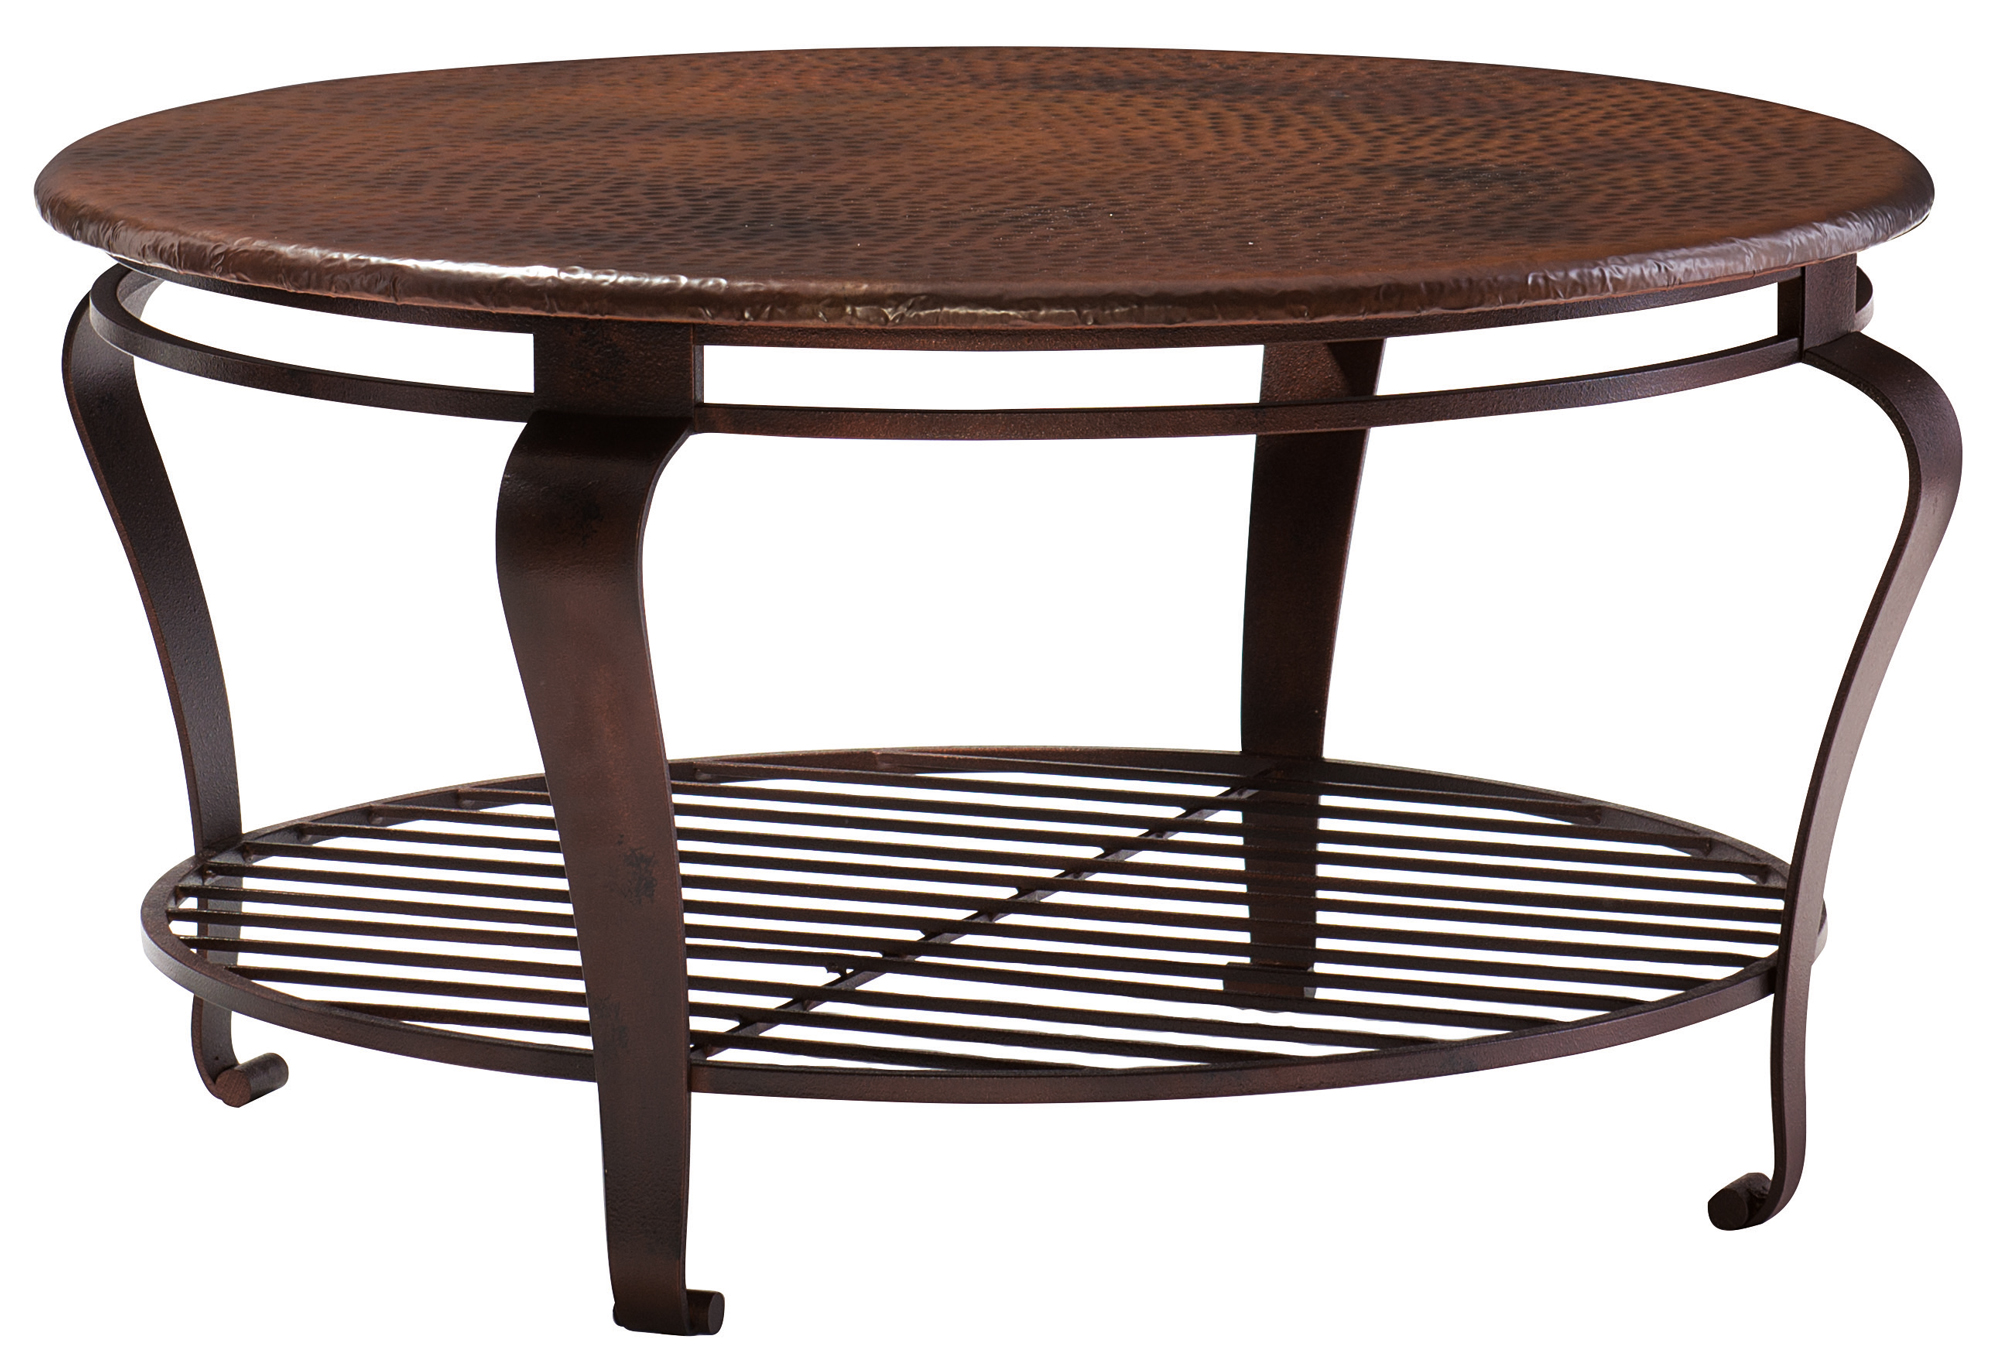 Bernhardt Occasional Bernhardt - Round cocktail table with stools